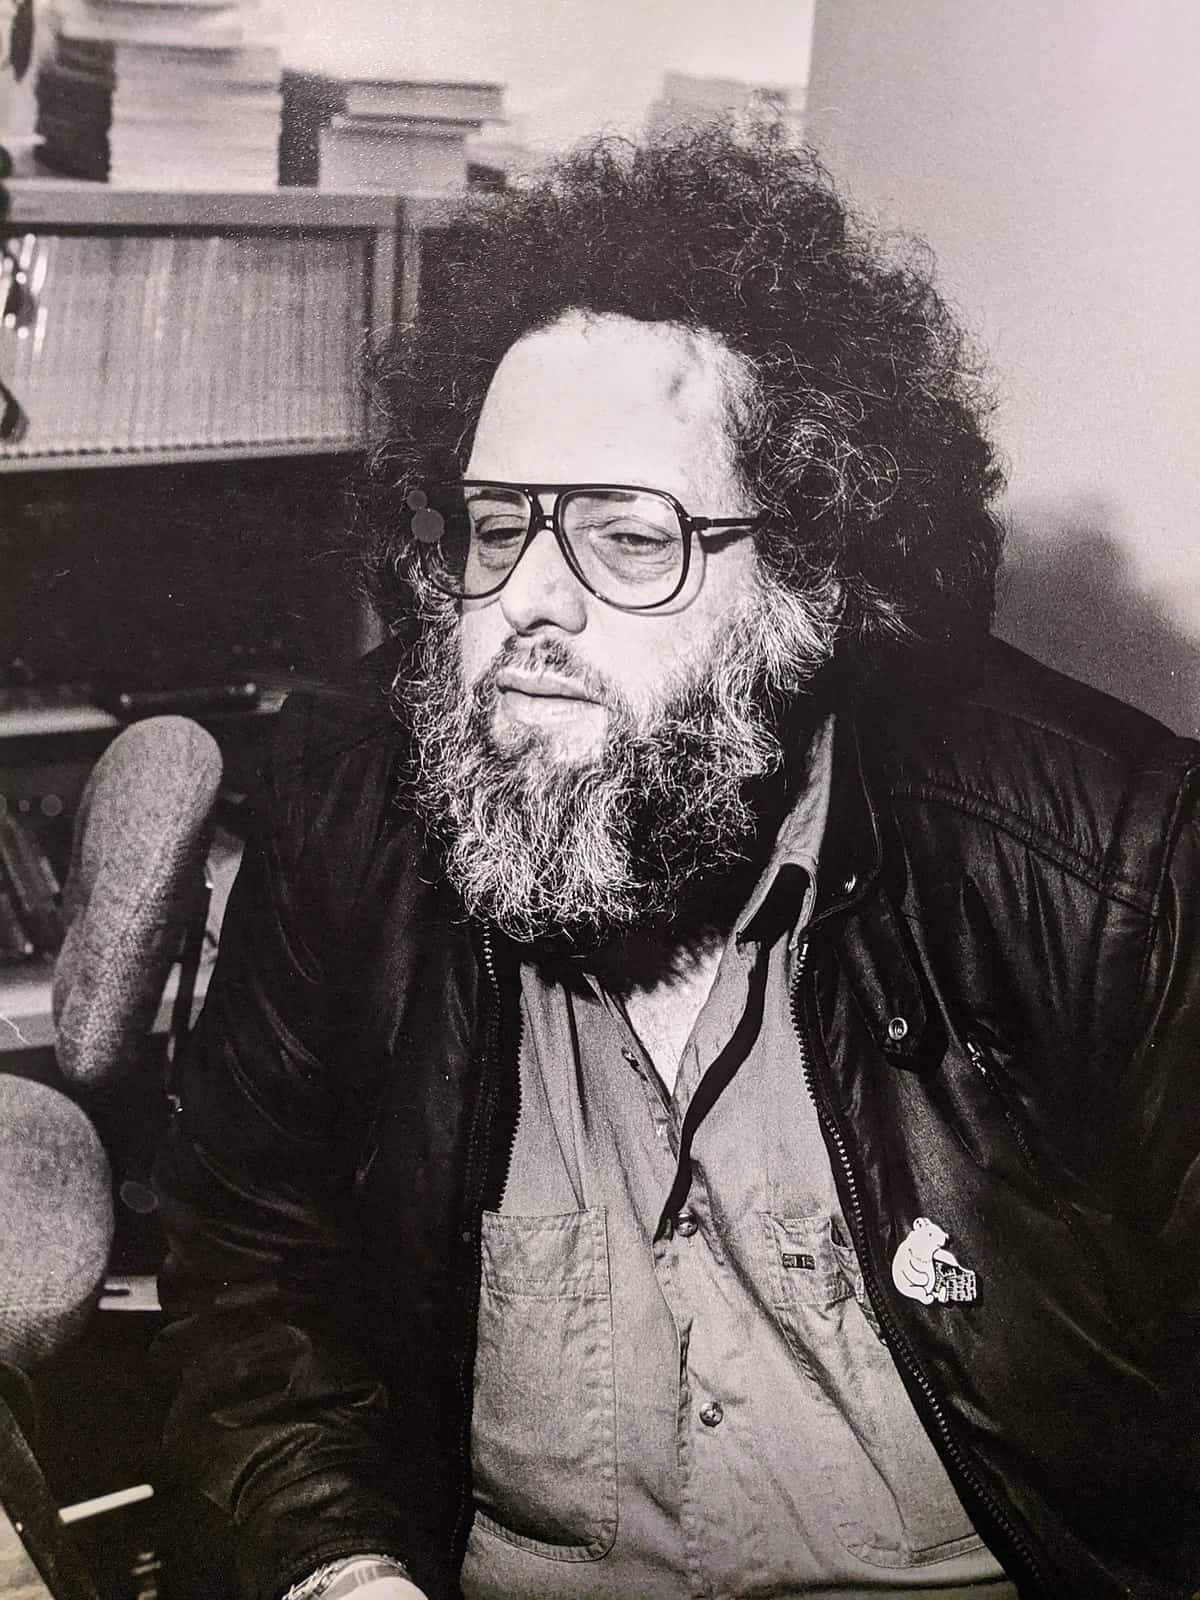 Marshall Berman